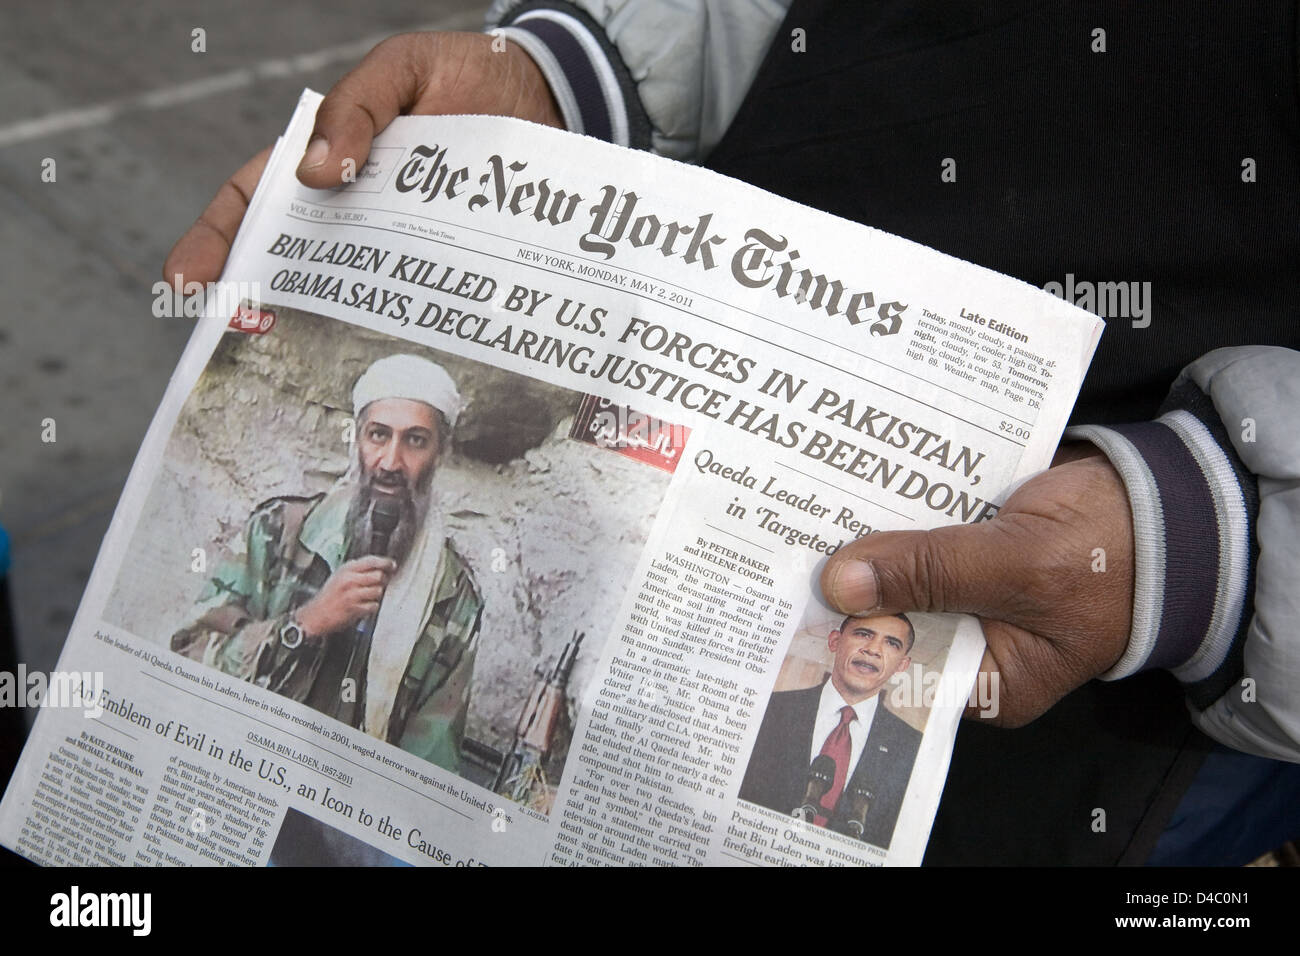 New York City, United States, headline the death of Osama Bin Laden - Stock Image